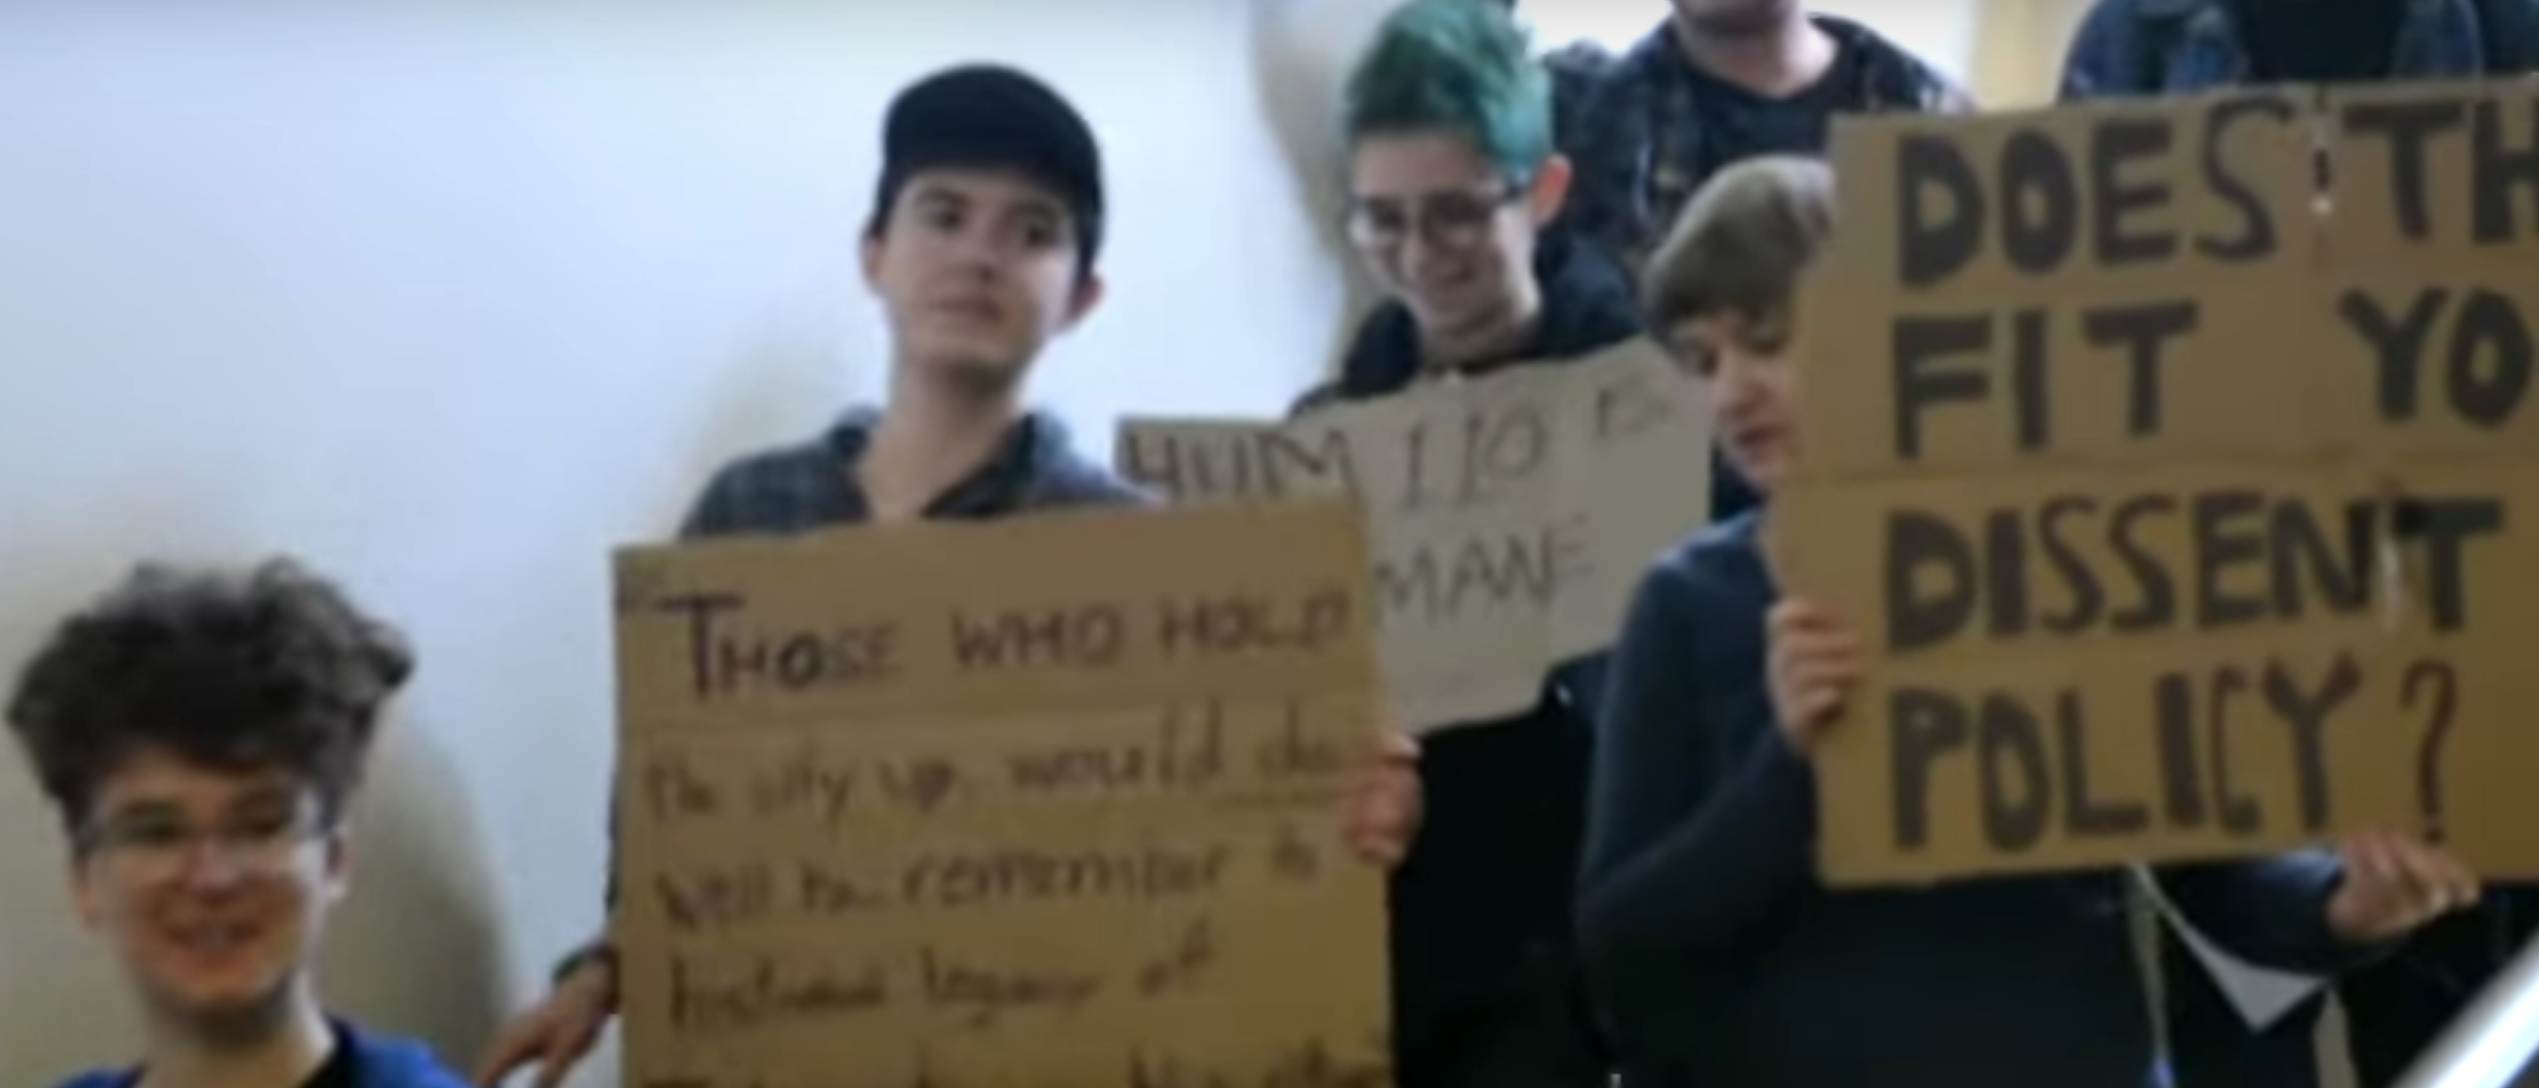 Reed College protests, YouTube